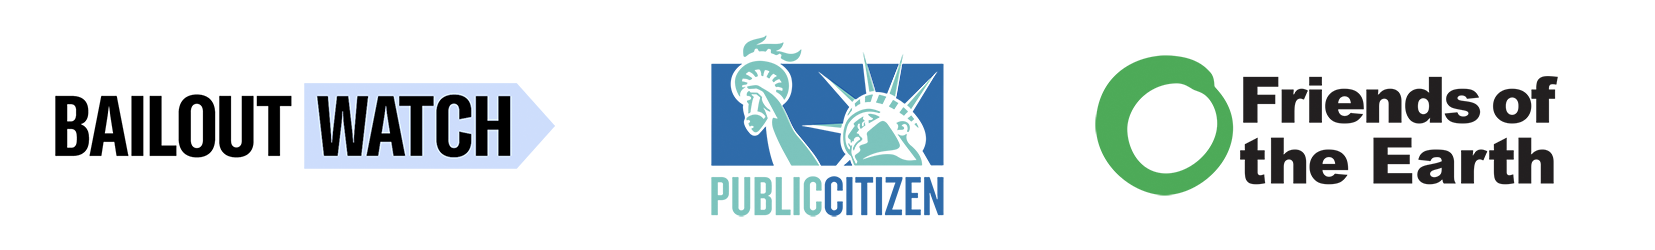 BailoutWatch Public Citizen Friends of the Earth Logos